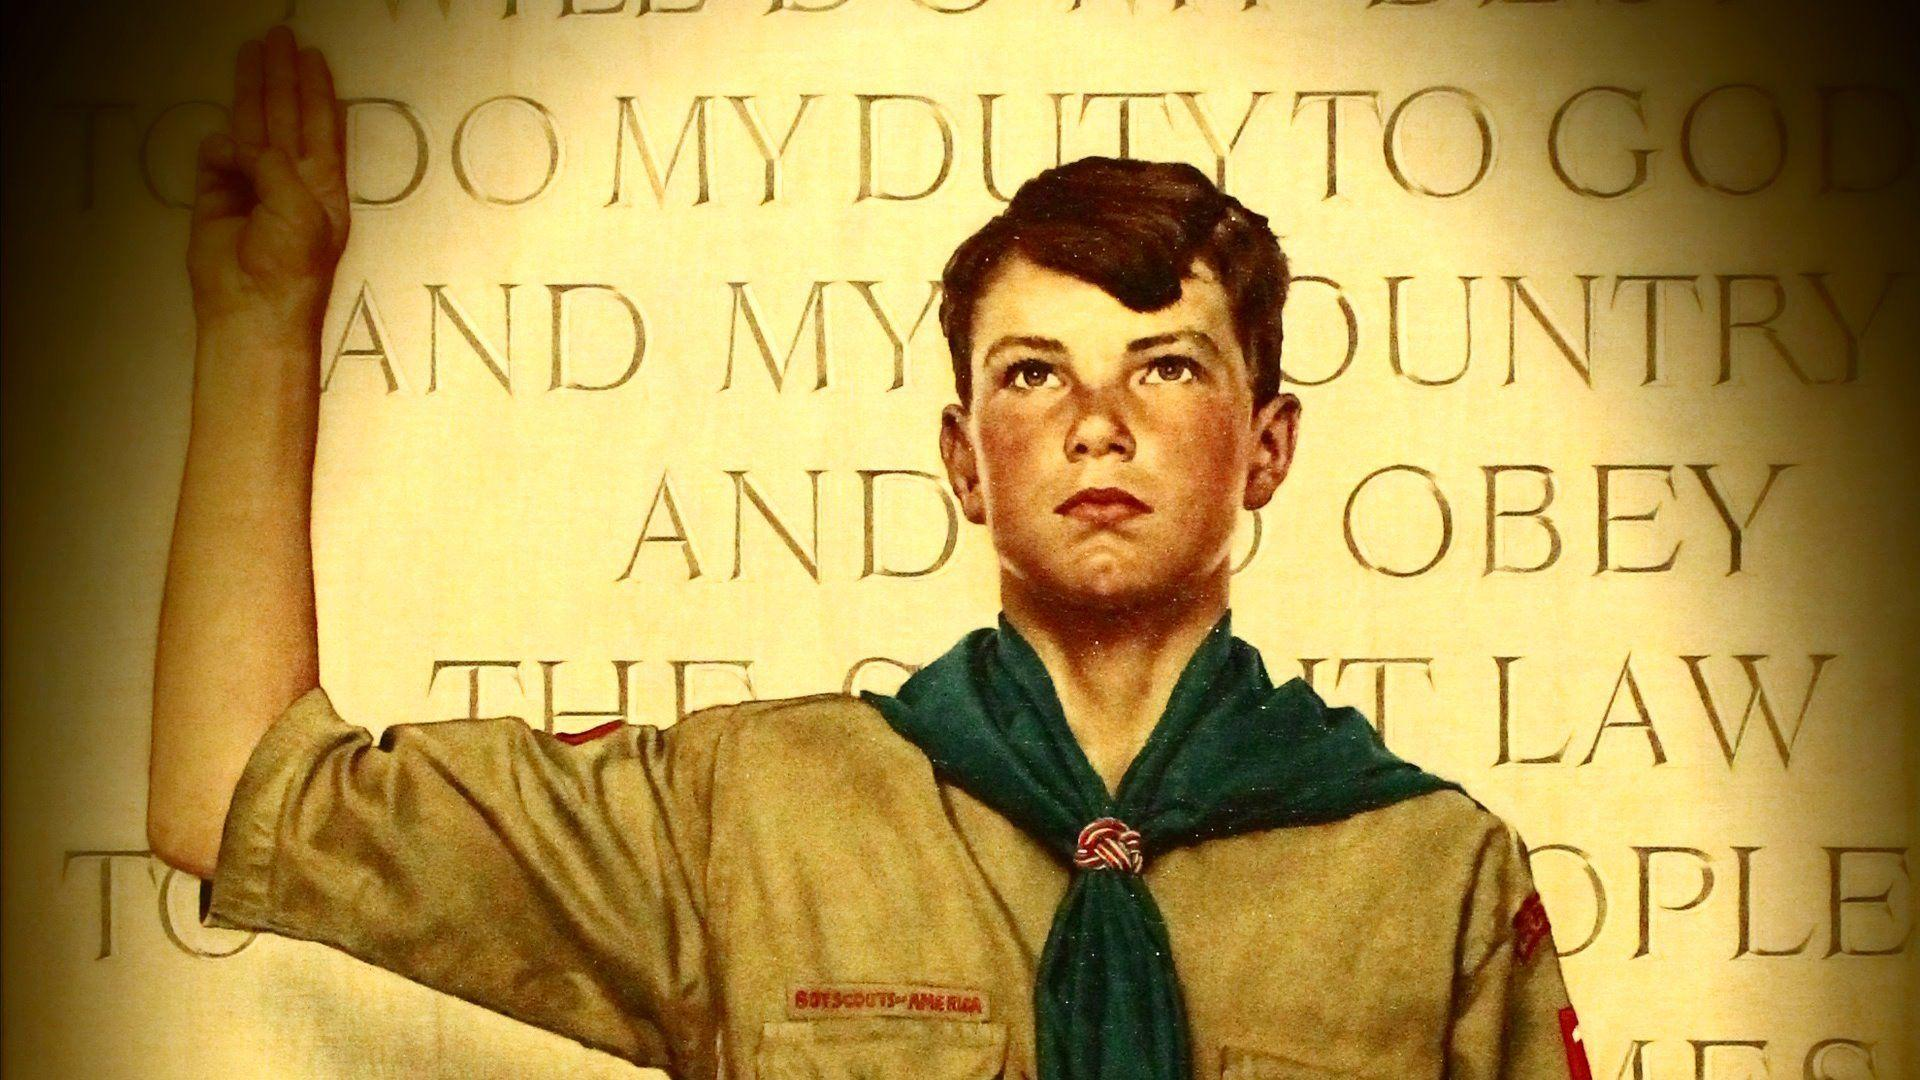 Norman Rockwell Boy Scout Paintings - WallDevil